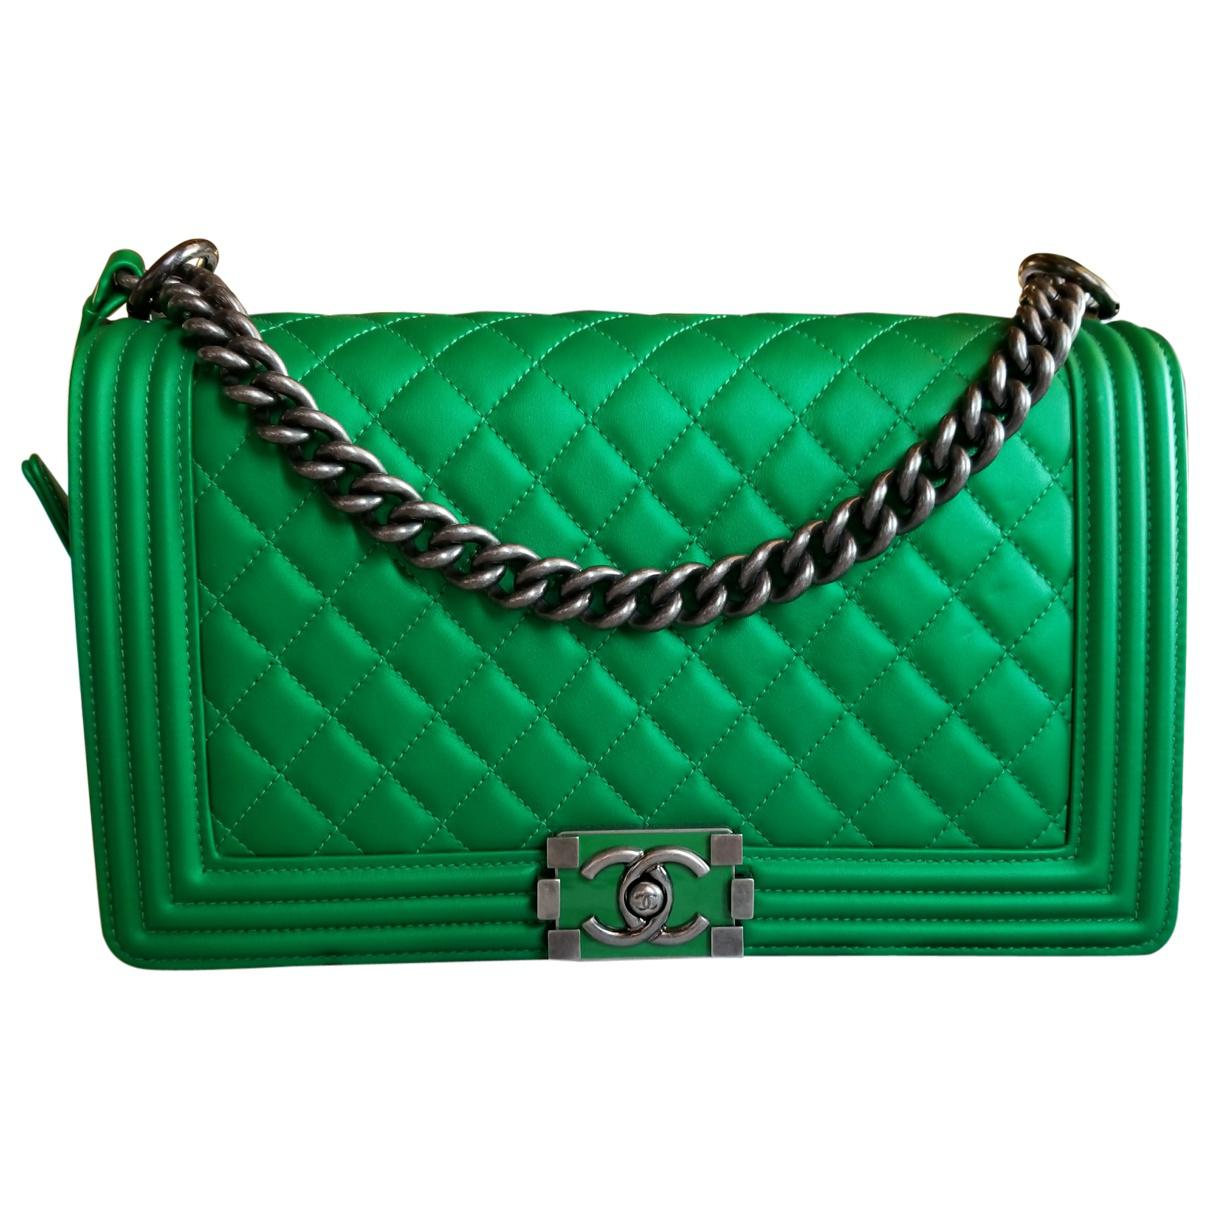 Chanel Pre-owned - Crossbody bag kITW3sDC